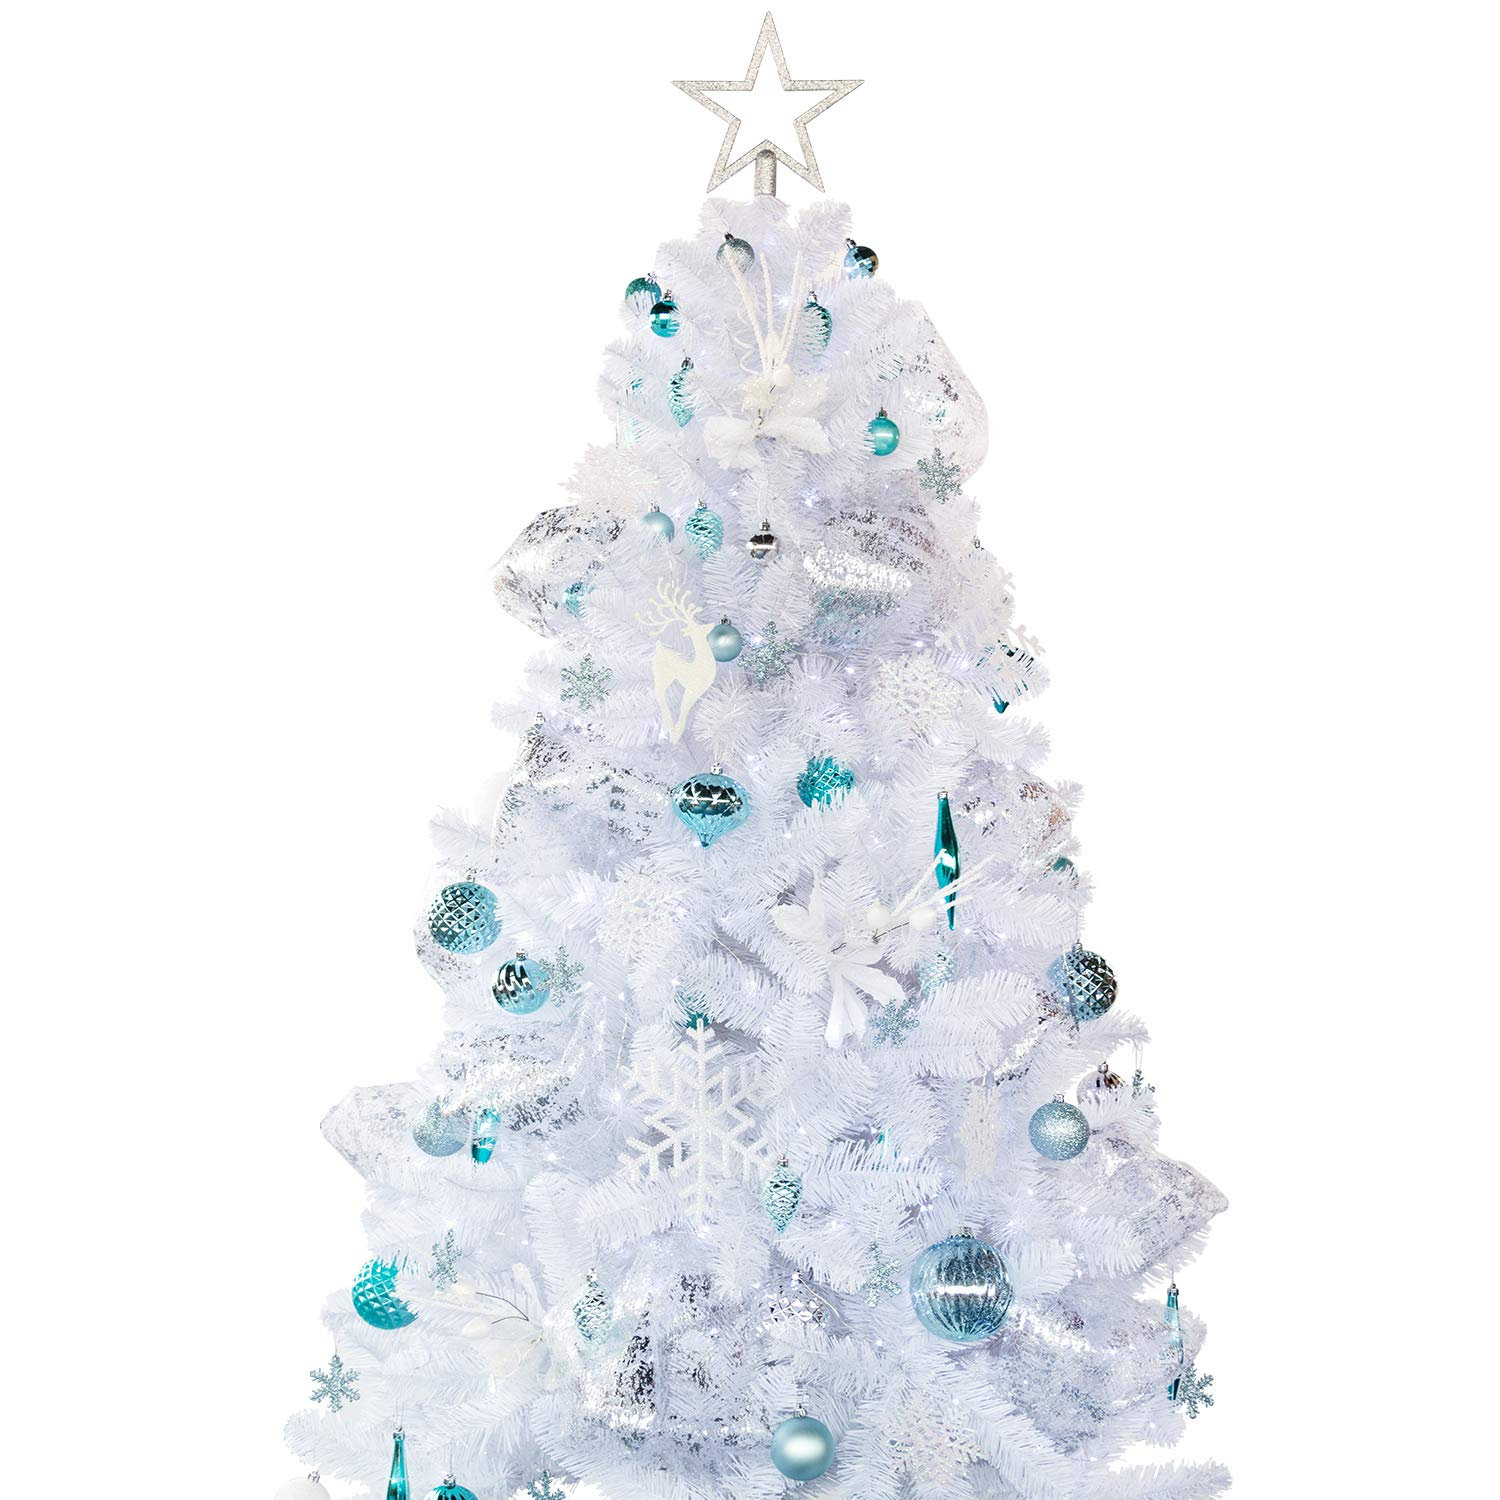 Ki Store Artificial White Christmas Tree With Decoration Ornaments Blue And White Christmas Decorations Including 6 Feet Full Christmas Tree